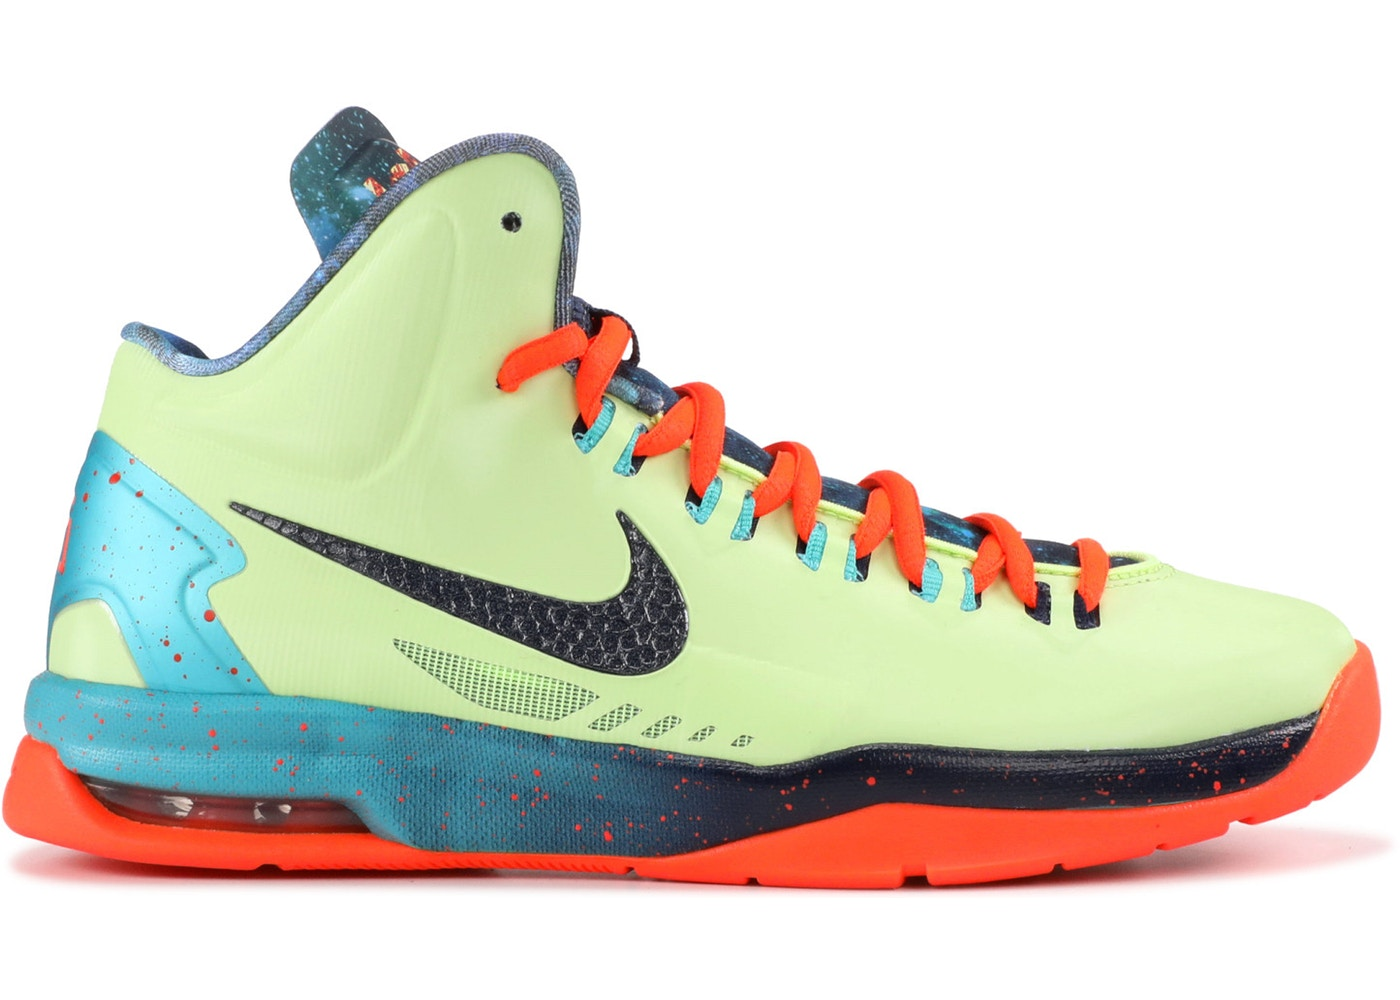 8f88be827117 Buy Nike KD 5 Shoes   Deadstock Sneakers